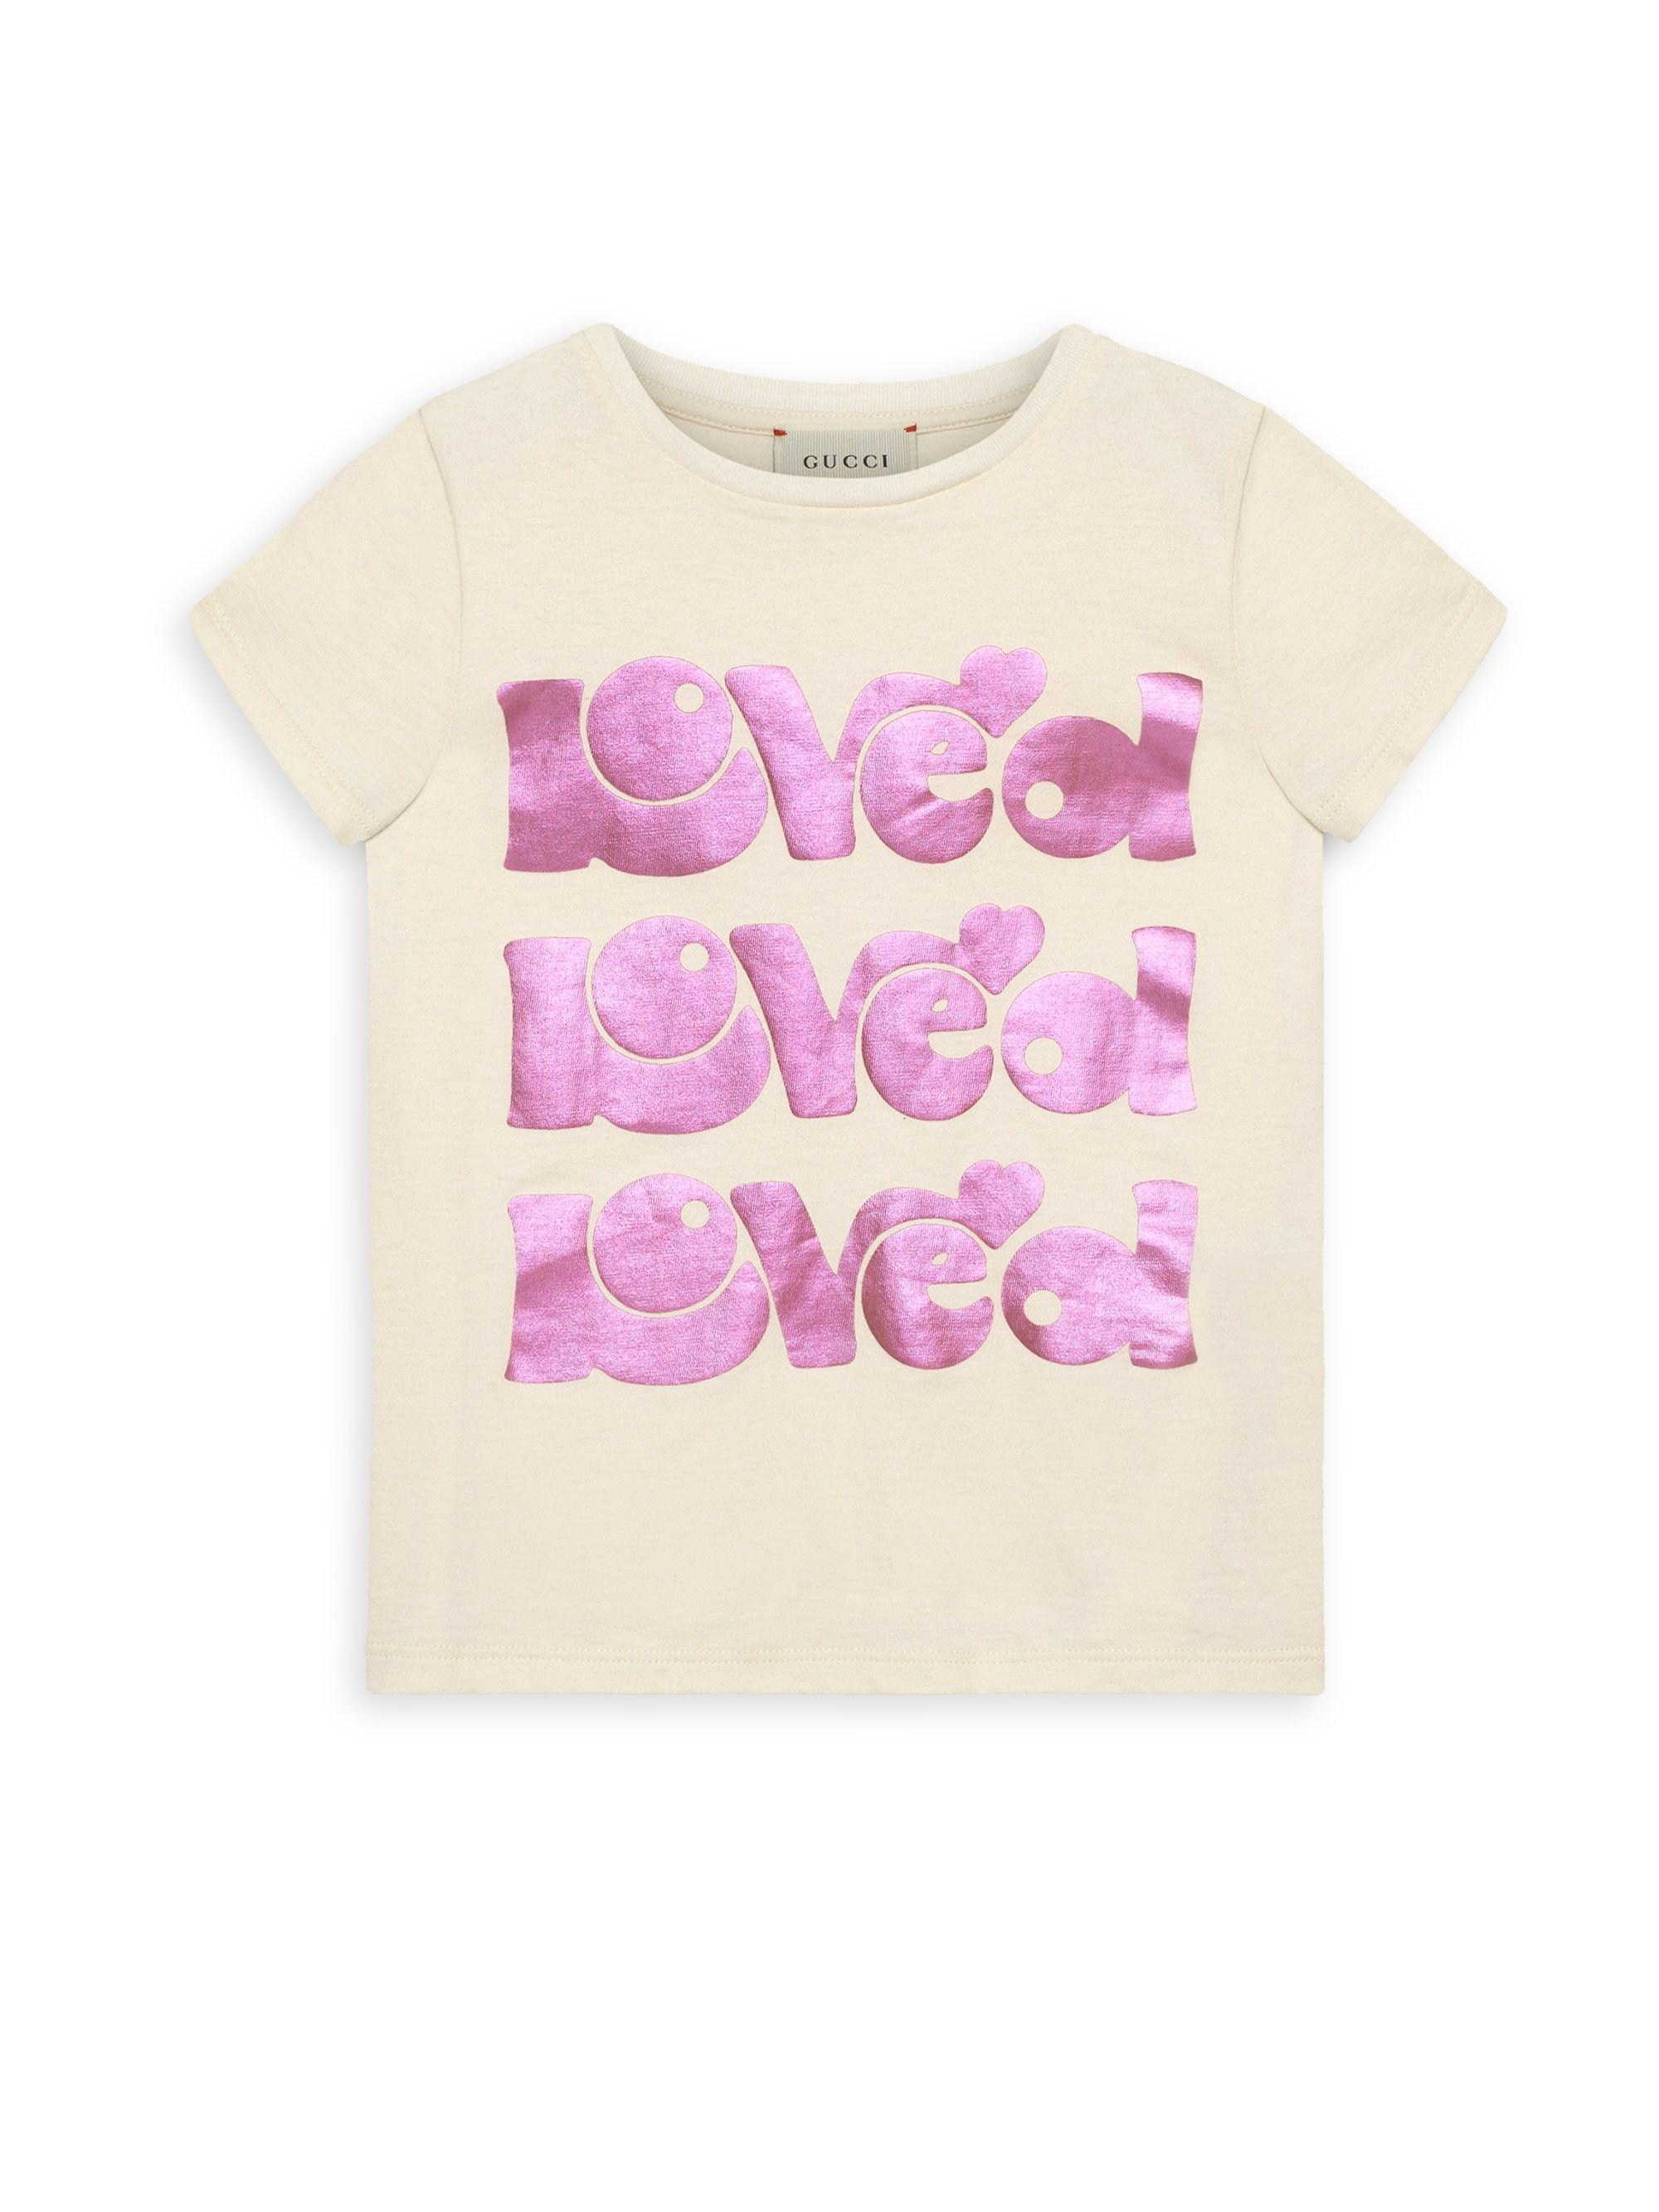 587c534c999d Lyst - Gucci Baby Girl's & Little Girl's Printed Short-sleeve Tee